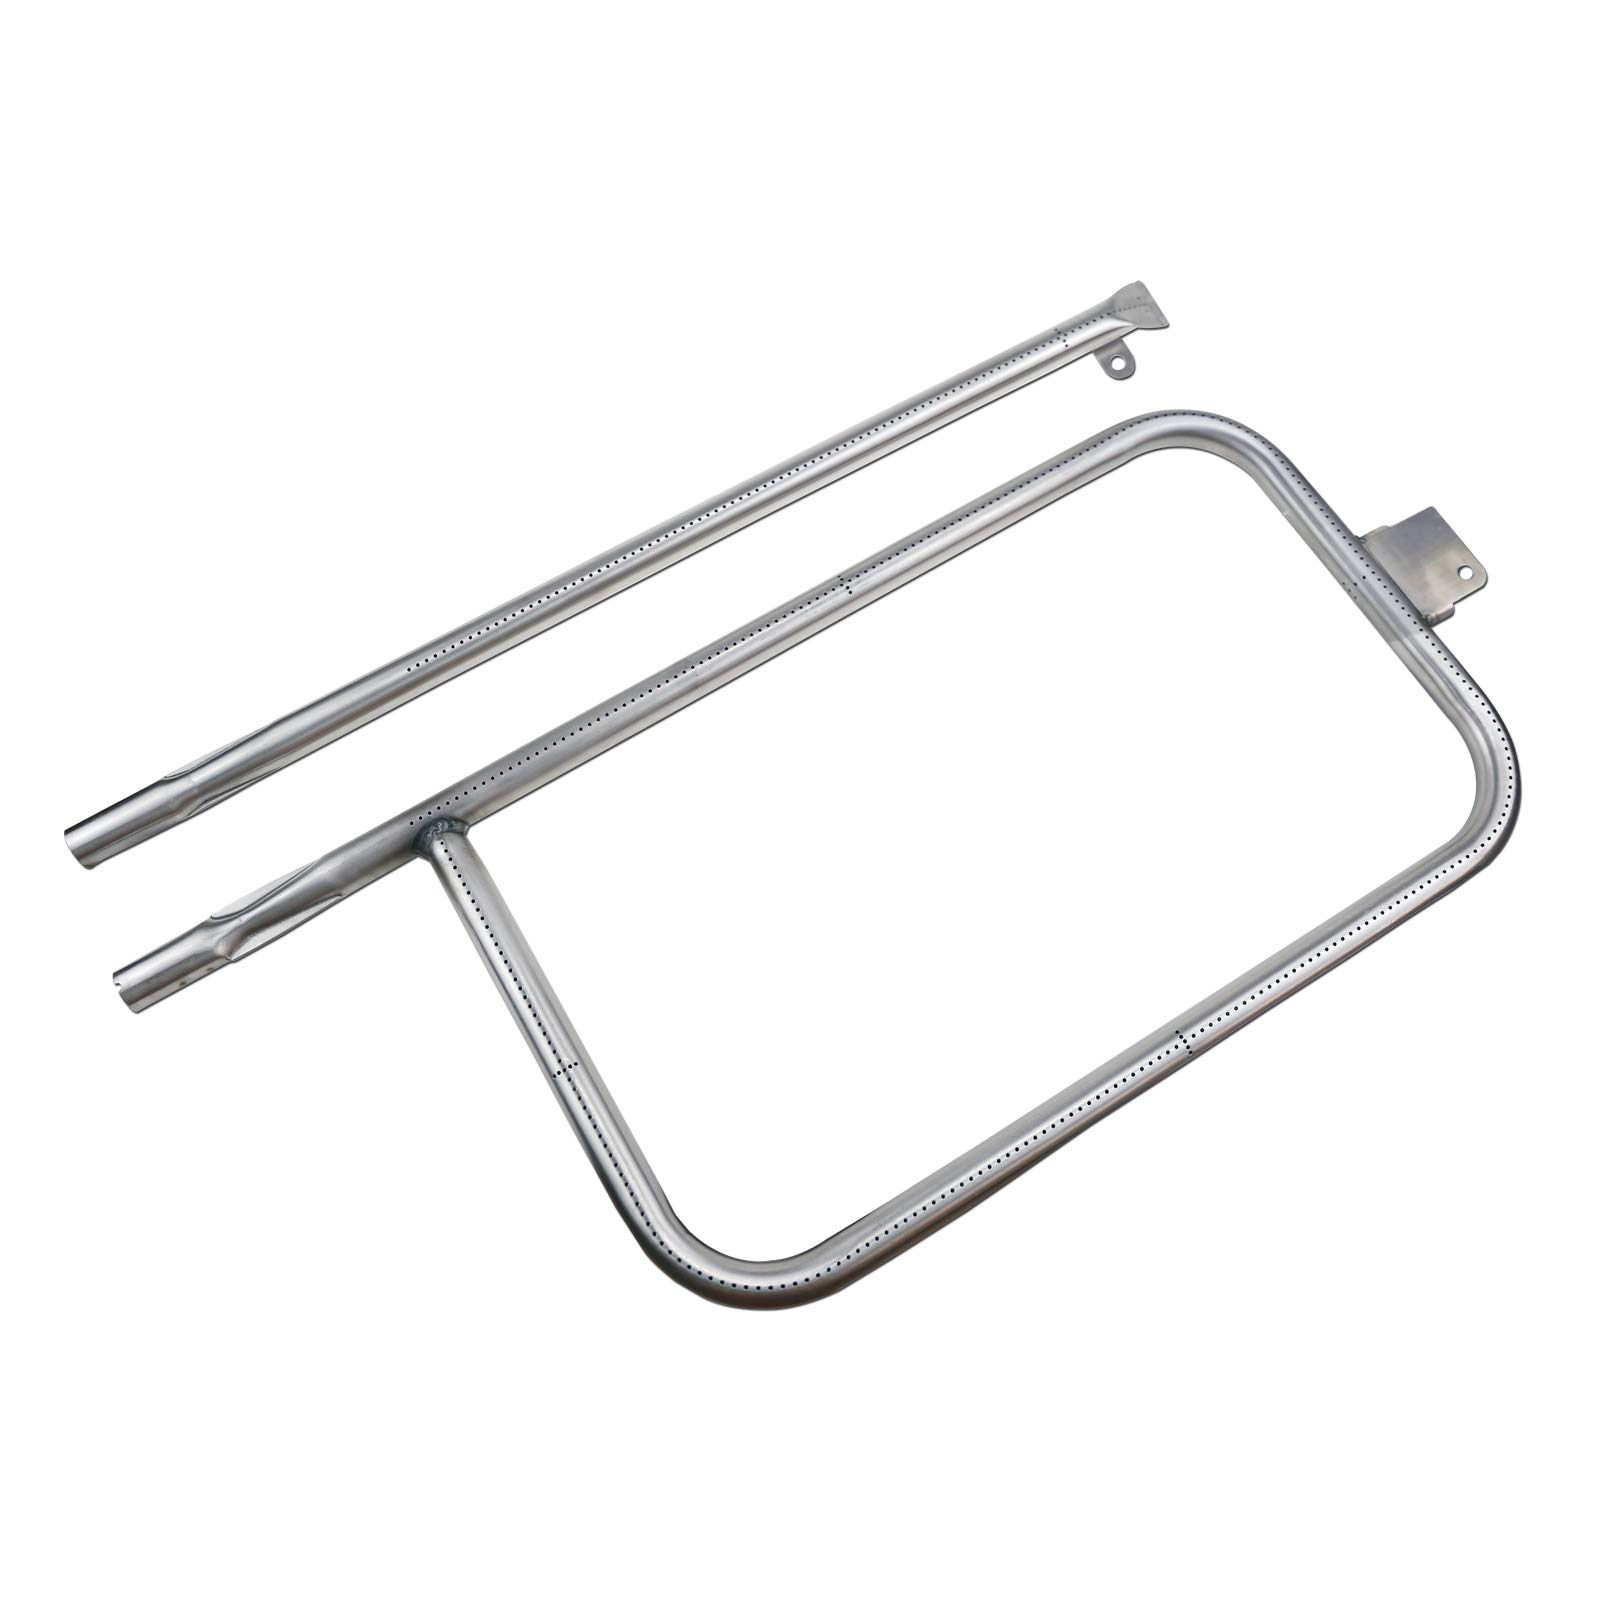 Uniflasy Stainless Steel Grill Burner Tube Repair Kit Replacement Parts for Weber Q300, Q320, Q3200, 404341, 57060001, 586002, 65032 Gas Grill Accessories